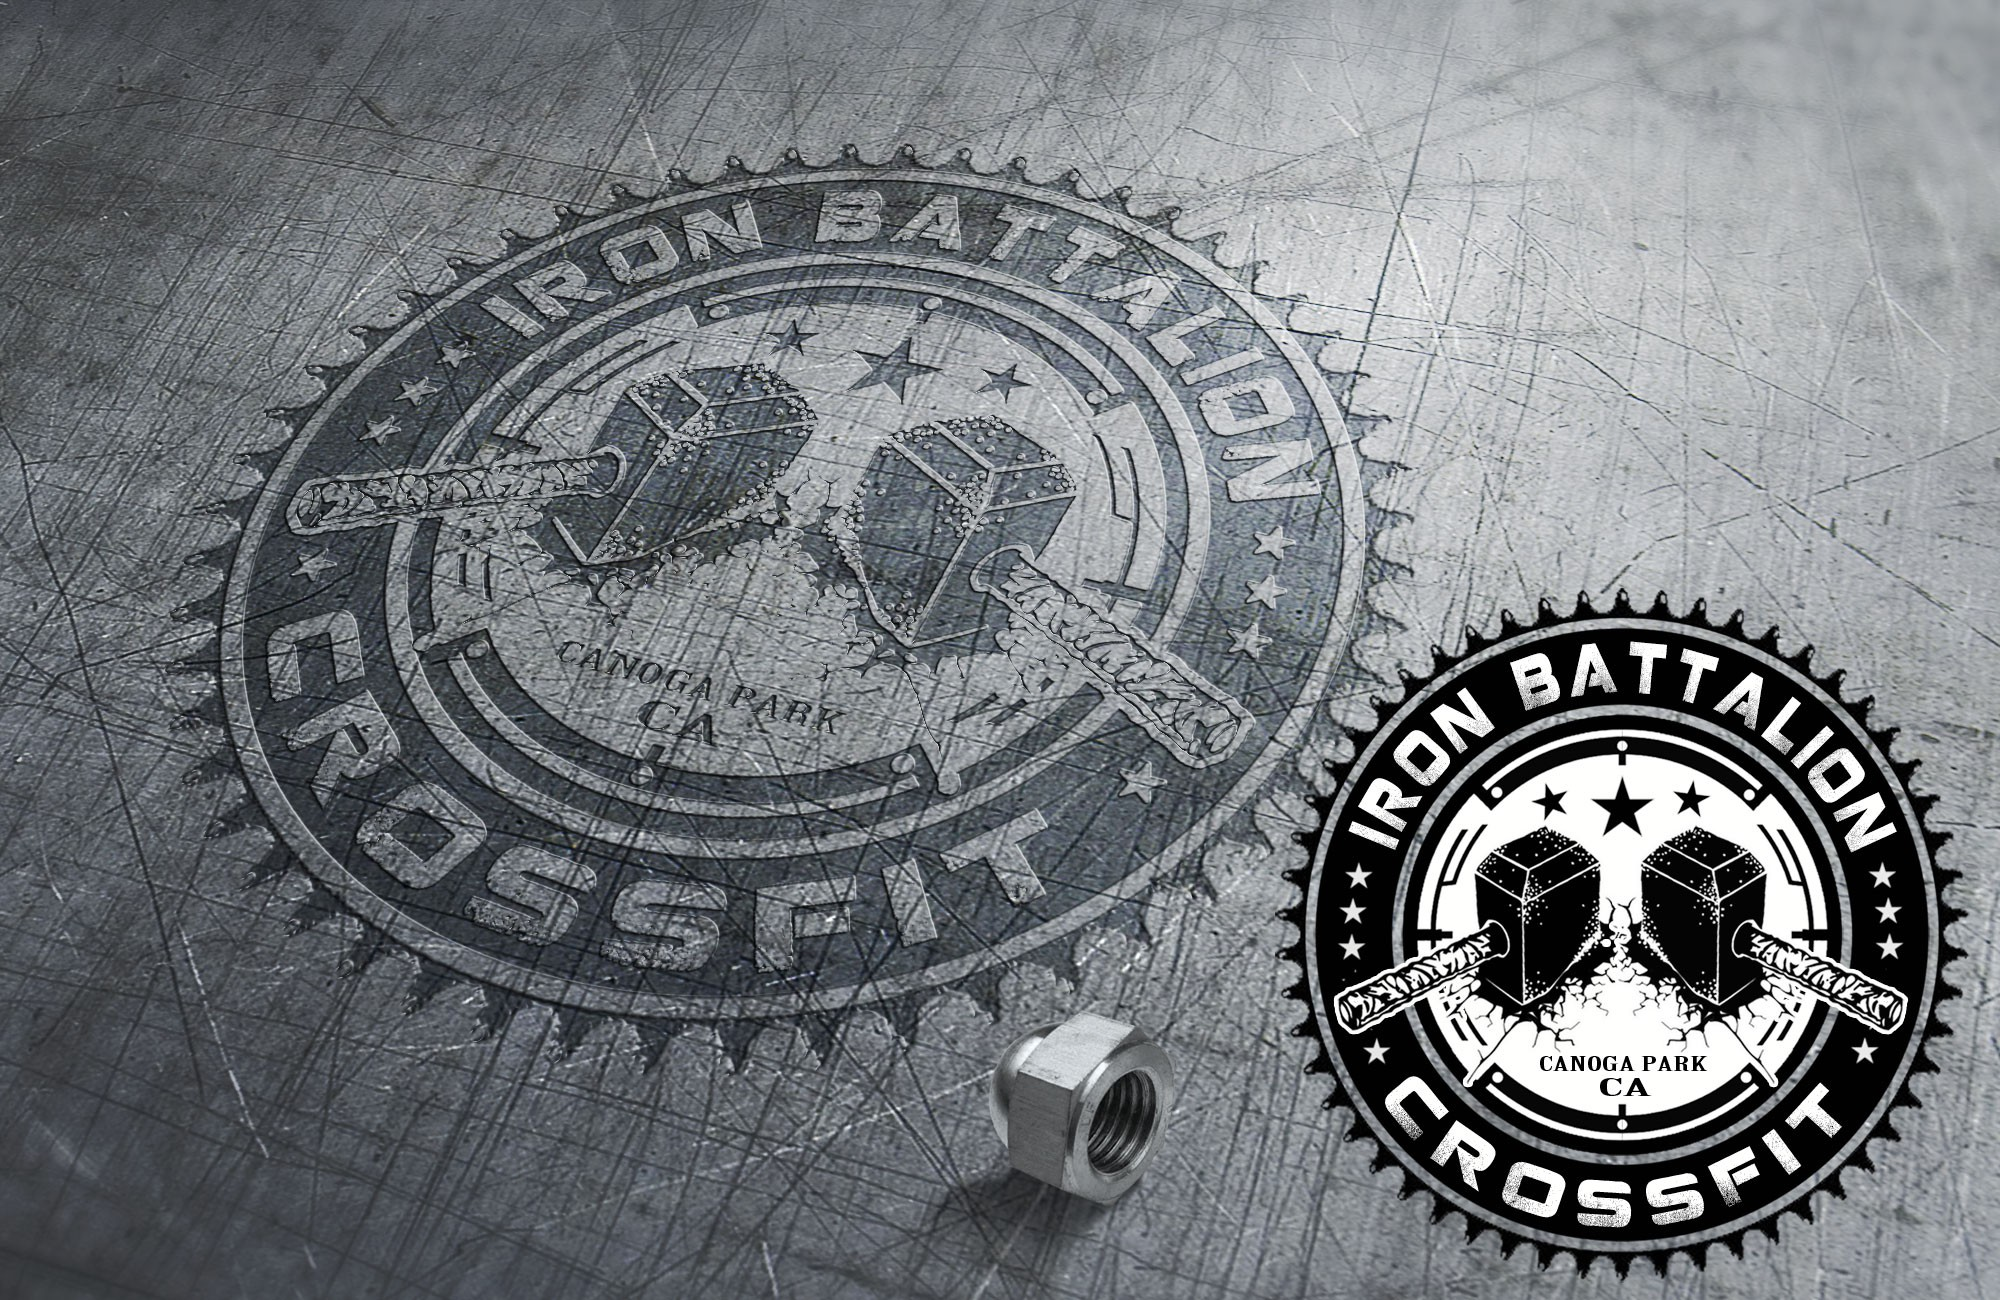 Create an awesome CrossFit brand that will be known worldwide once our team makes it to the Games!!!